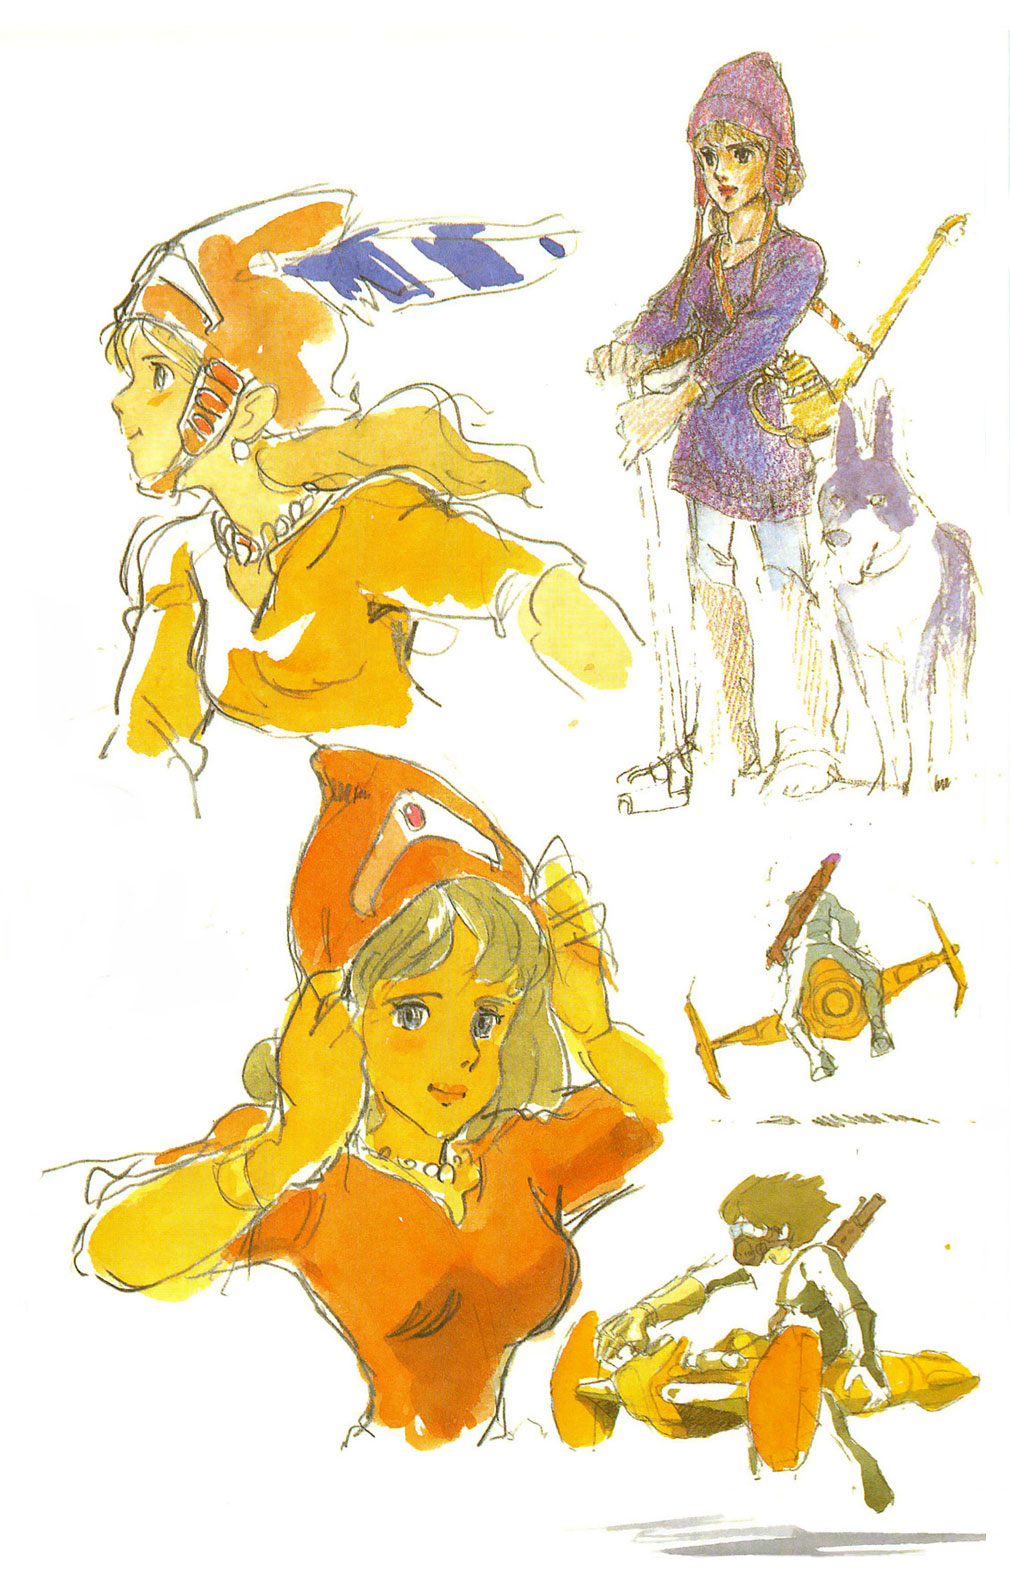 nausicaa_of_the_valley_of_the_wind_concept_art_character_03e.jpg